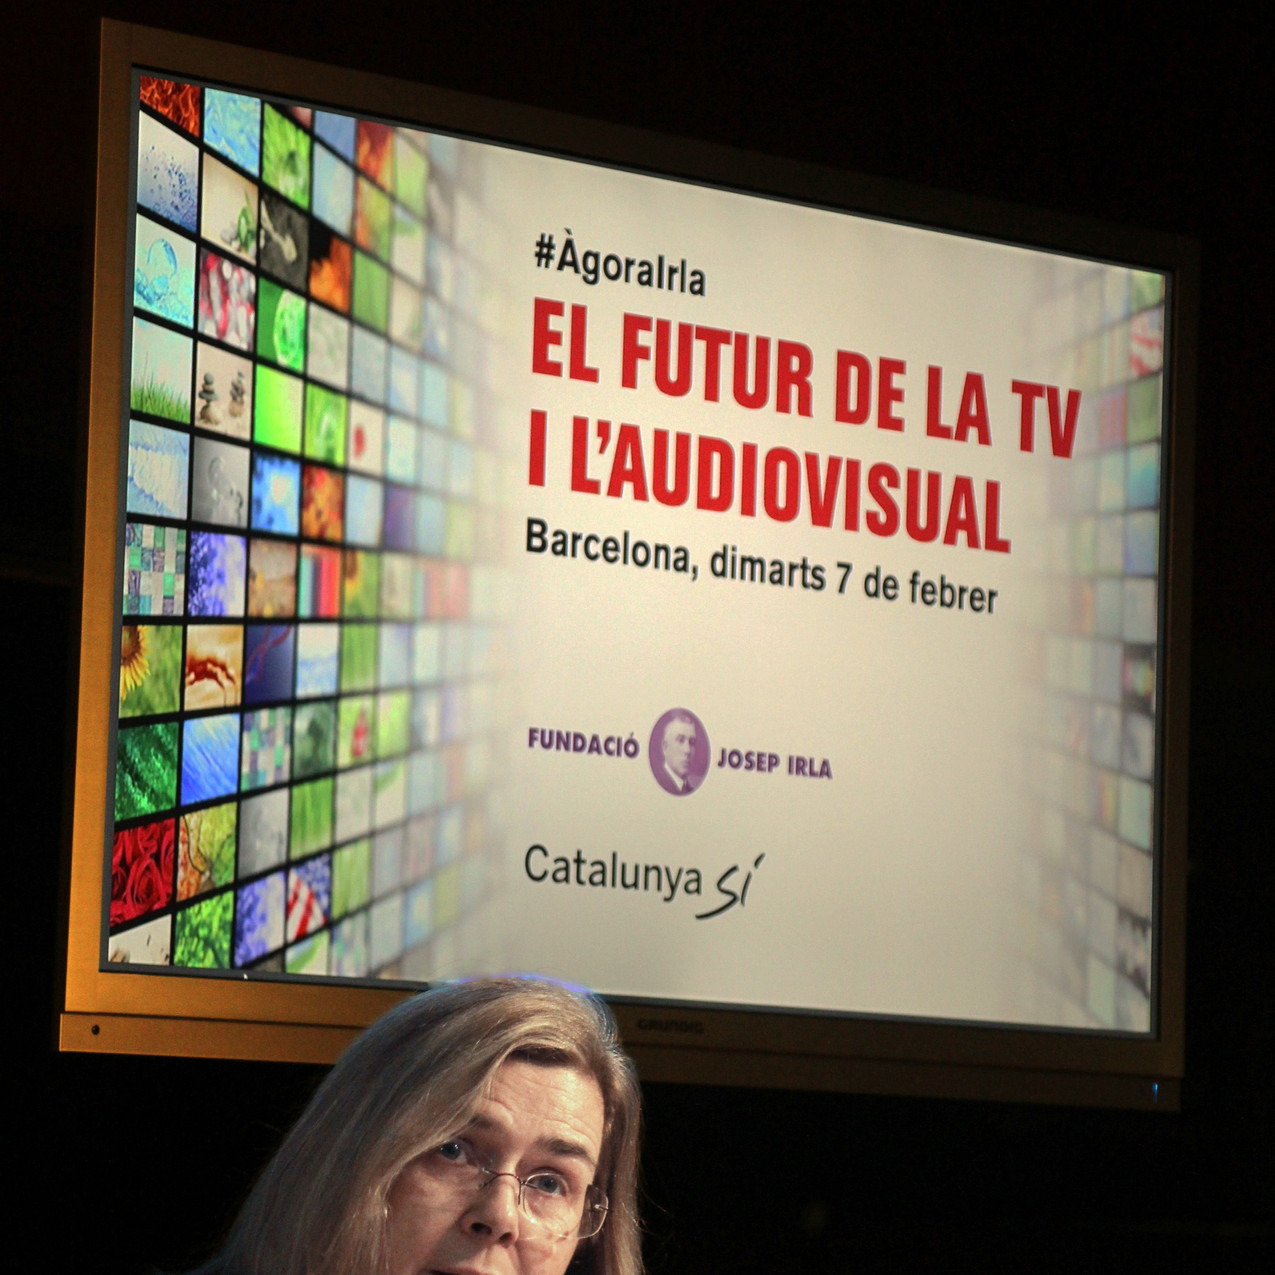 El Futur de la TV i l'Audiovisual